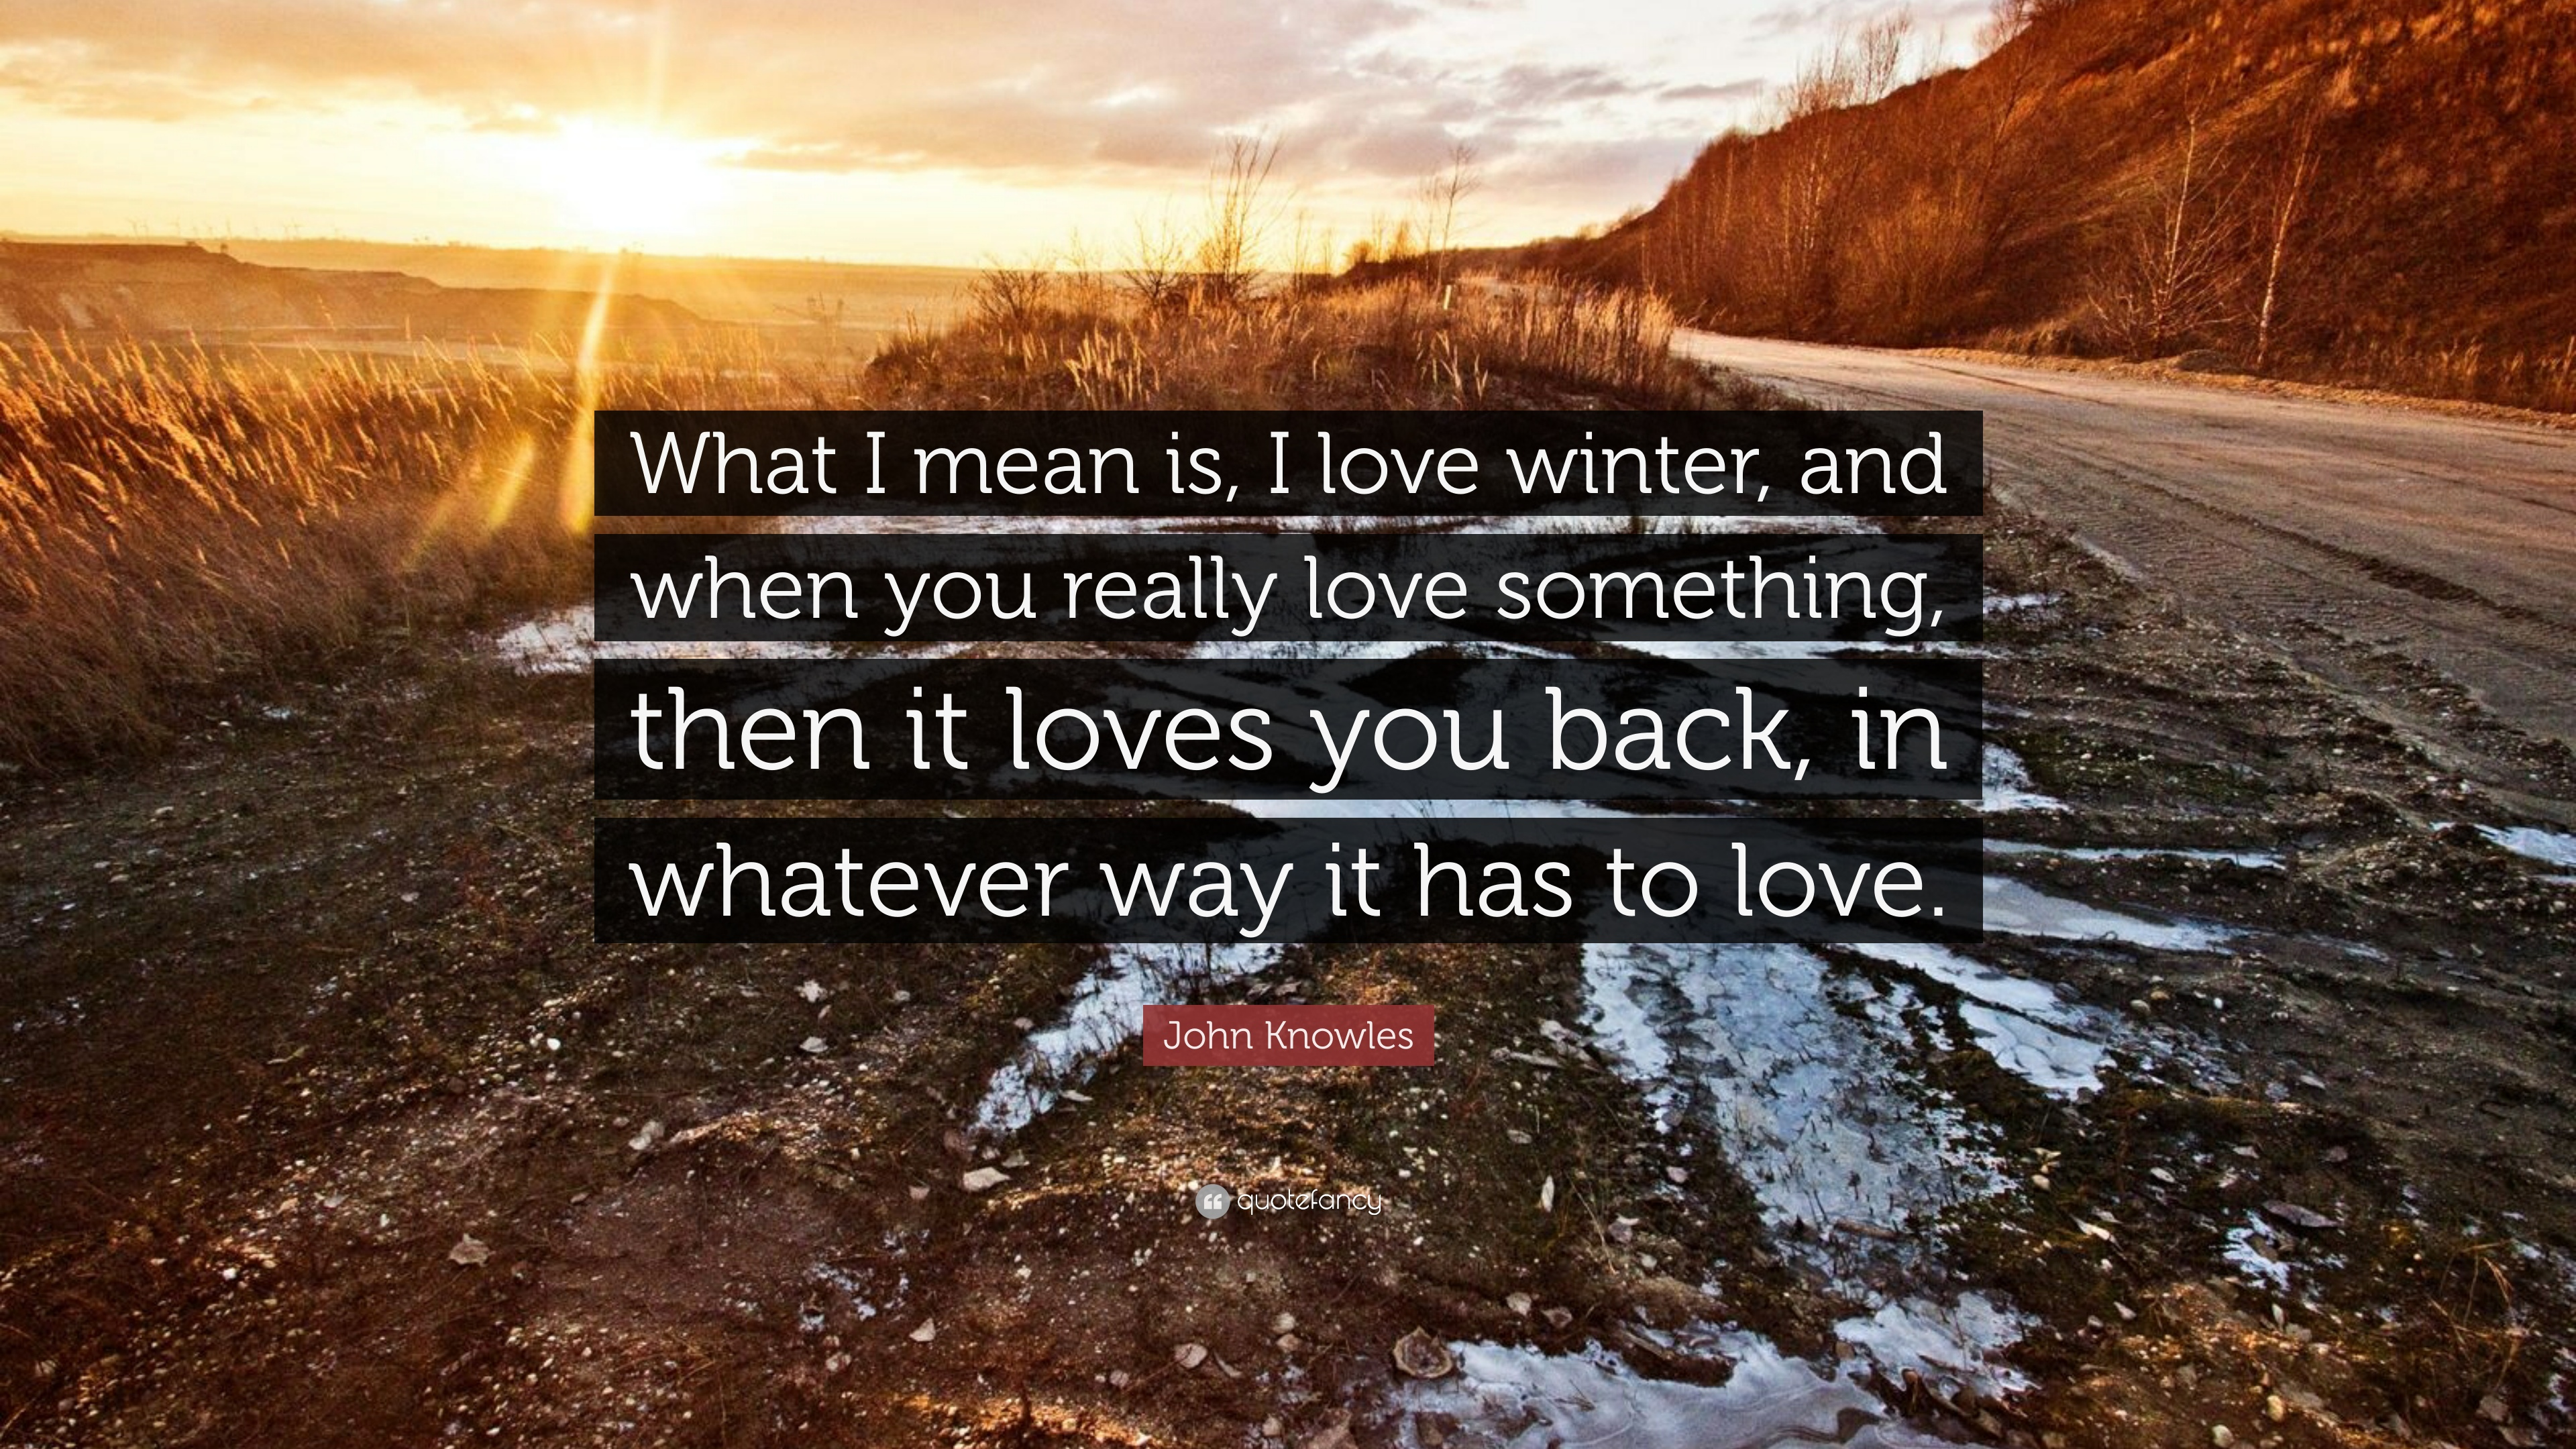 Best Wallpaper Love Winter - 373296-John-Knowles-Quote-What-I-mean-is-I-love-winter-and-when-you  Trends_74415.jpg